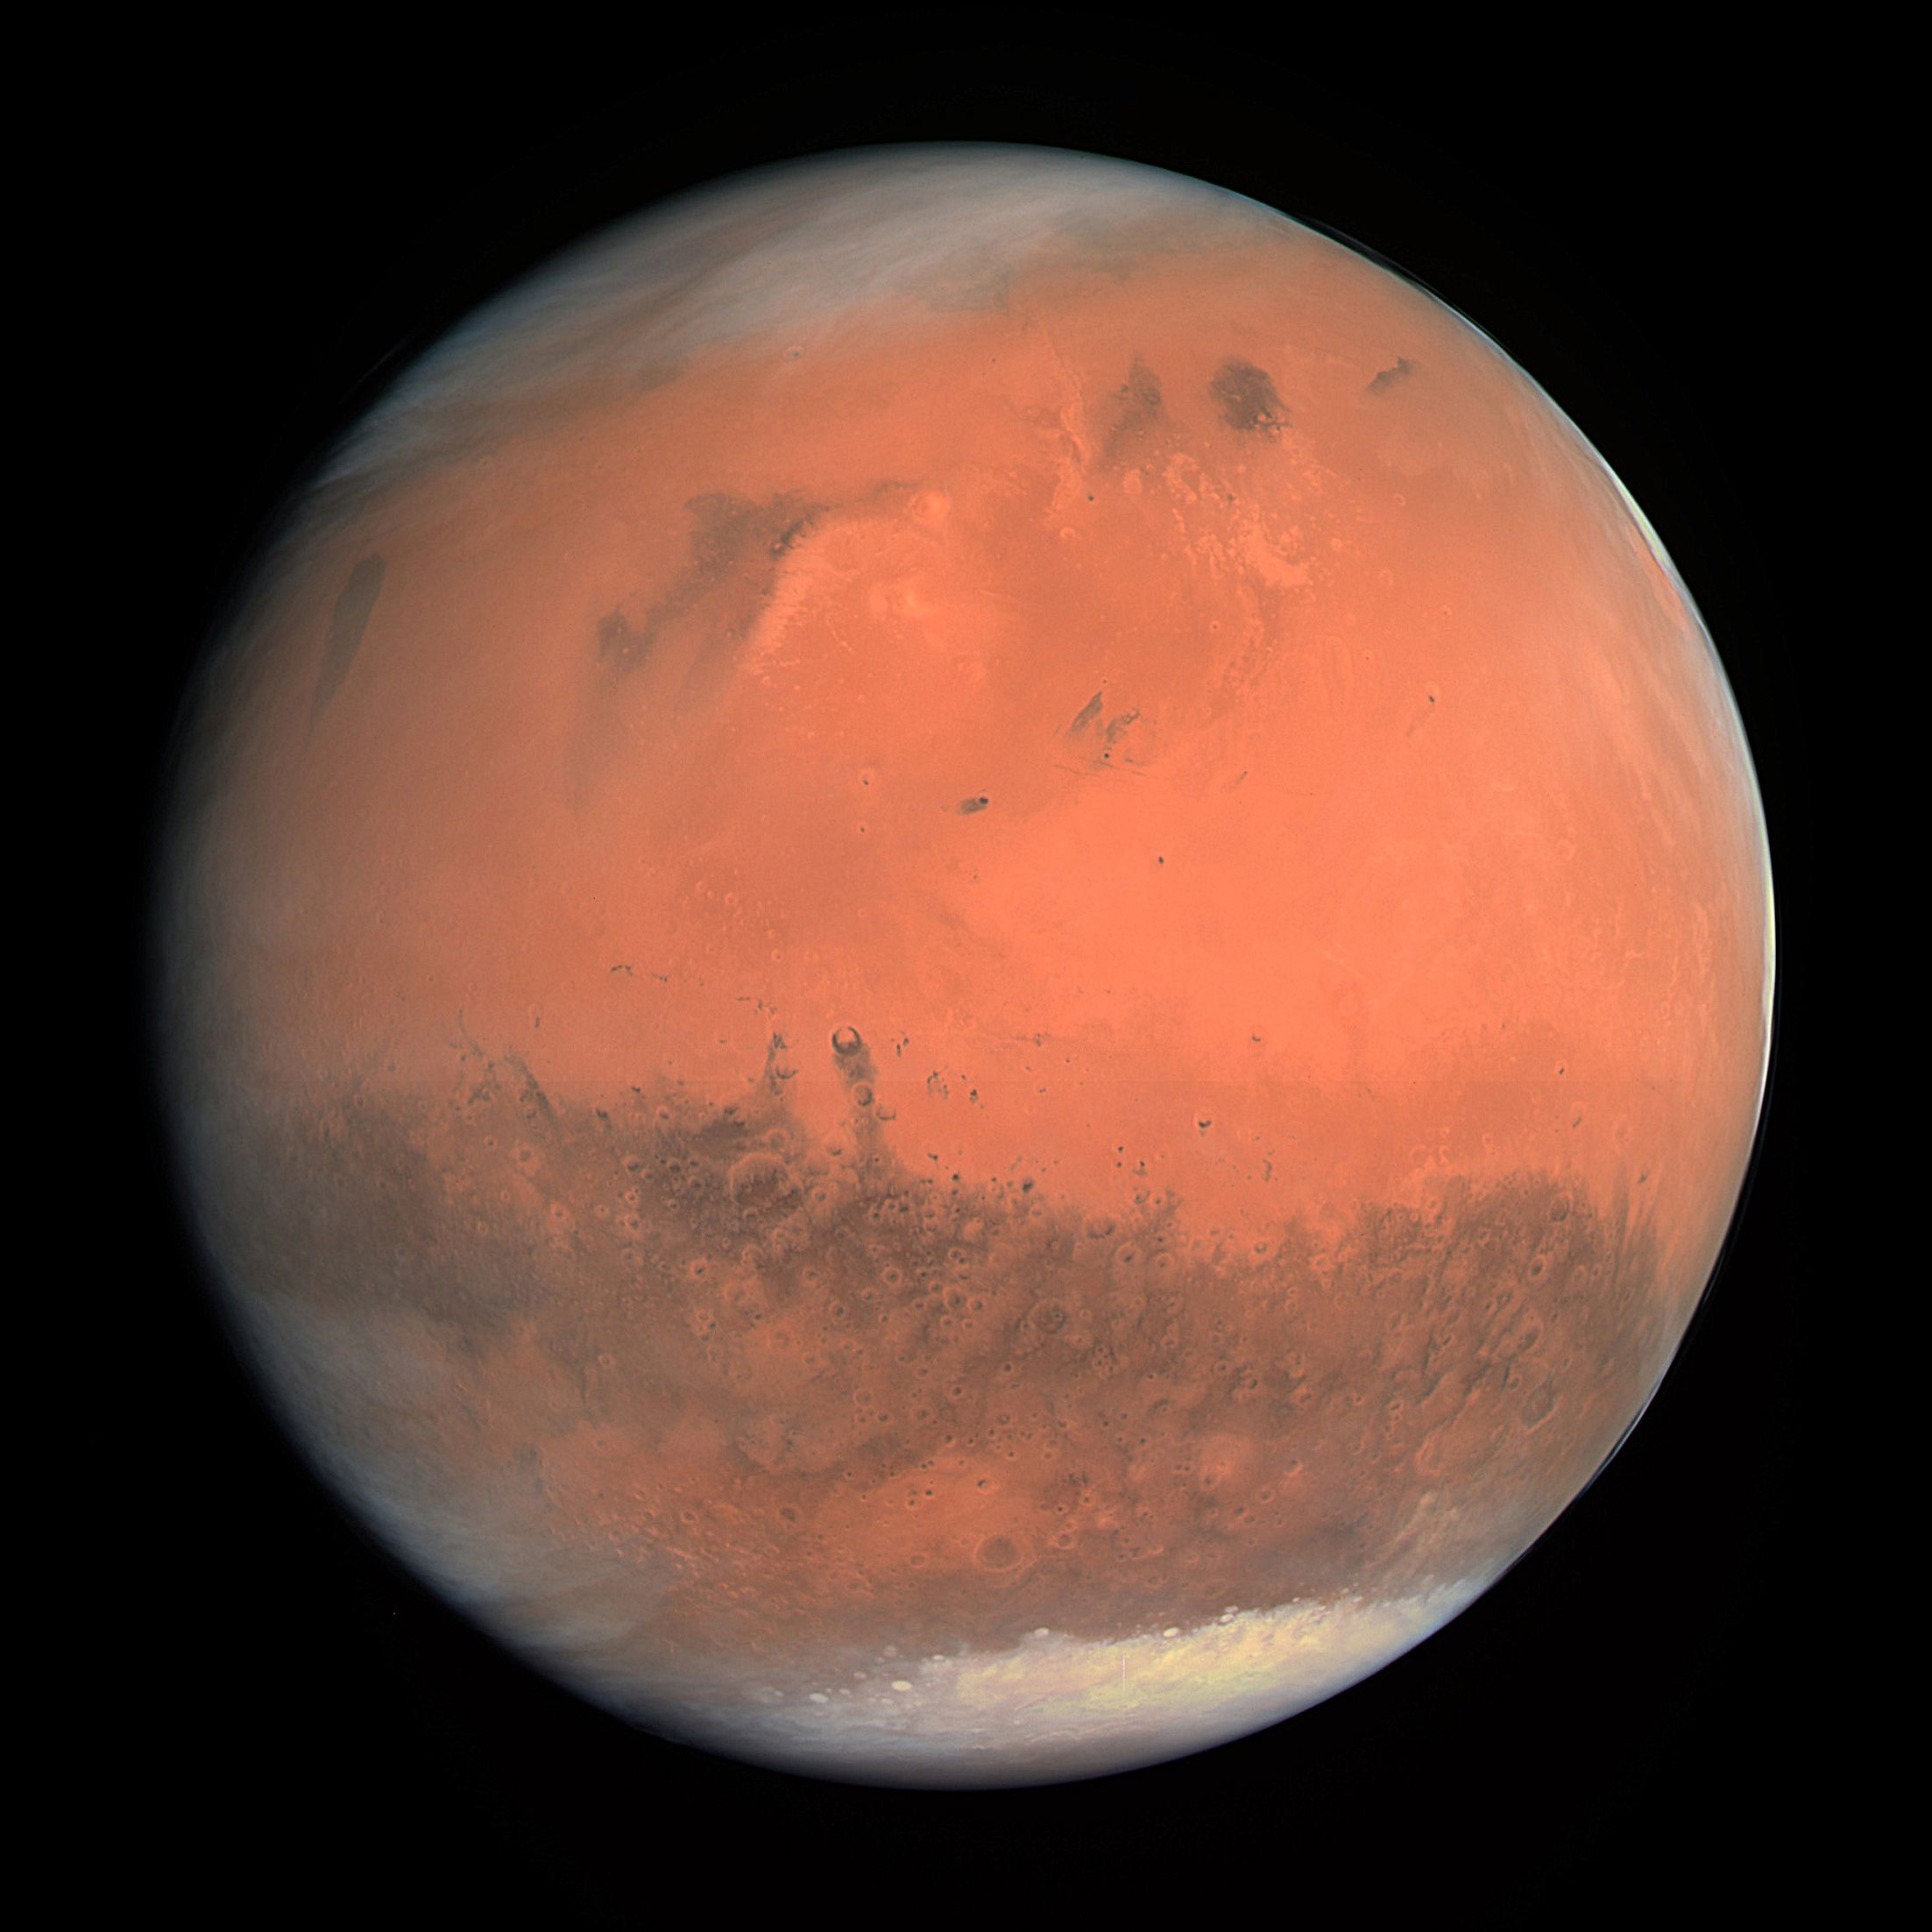 On Feb. 24, 2007, when it was about 240,000 km (130,000 miles) out, Rosetta took this incredible full-disk image of Mars with its main OSIRIS camera. It was the first three-color image taken by the camera that closely represents what the eye would see. - Credit: ESA